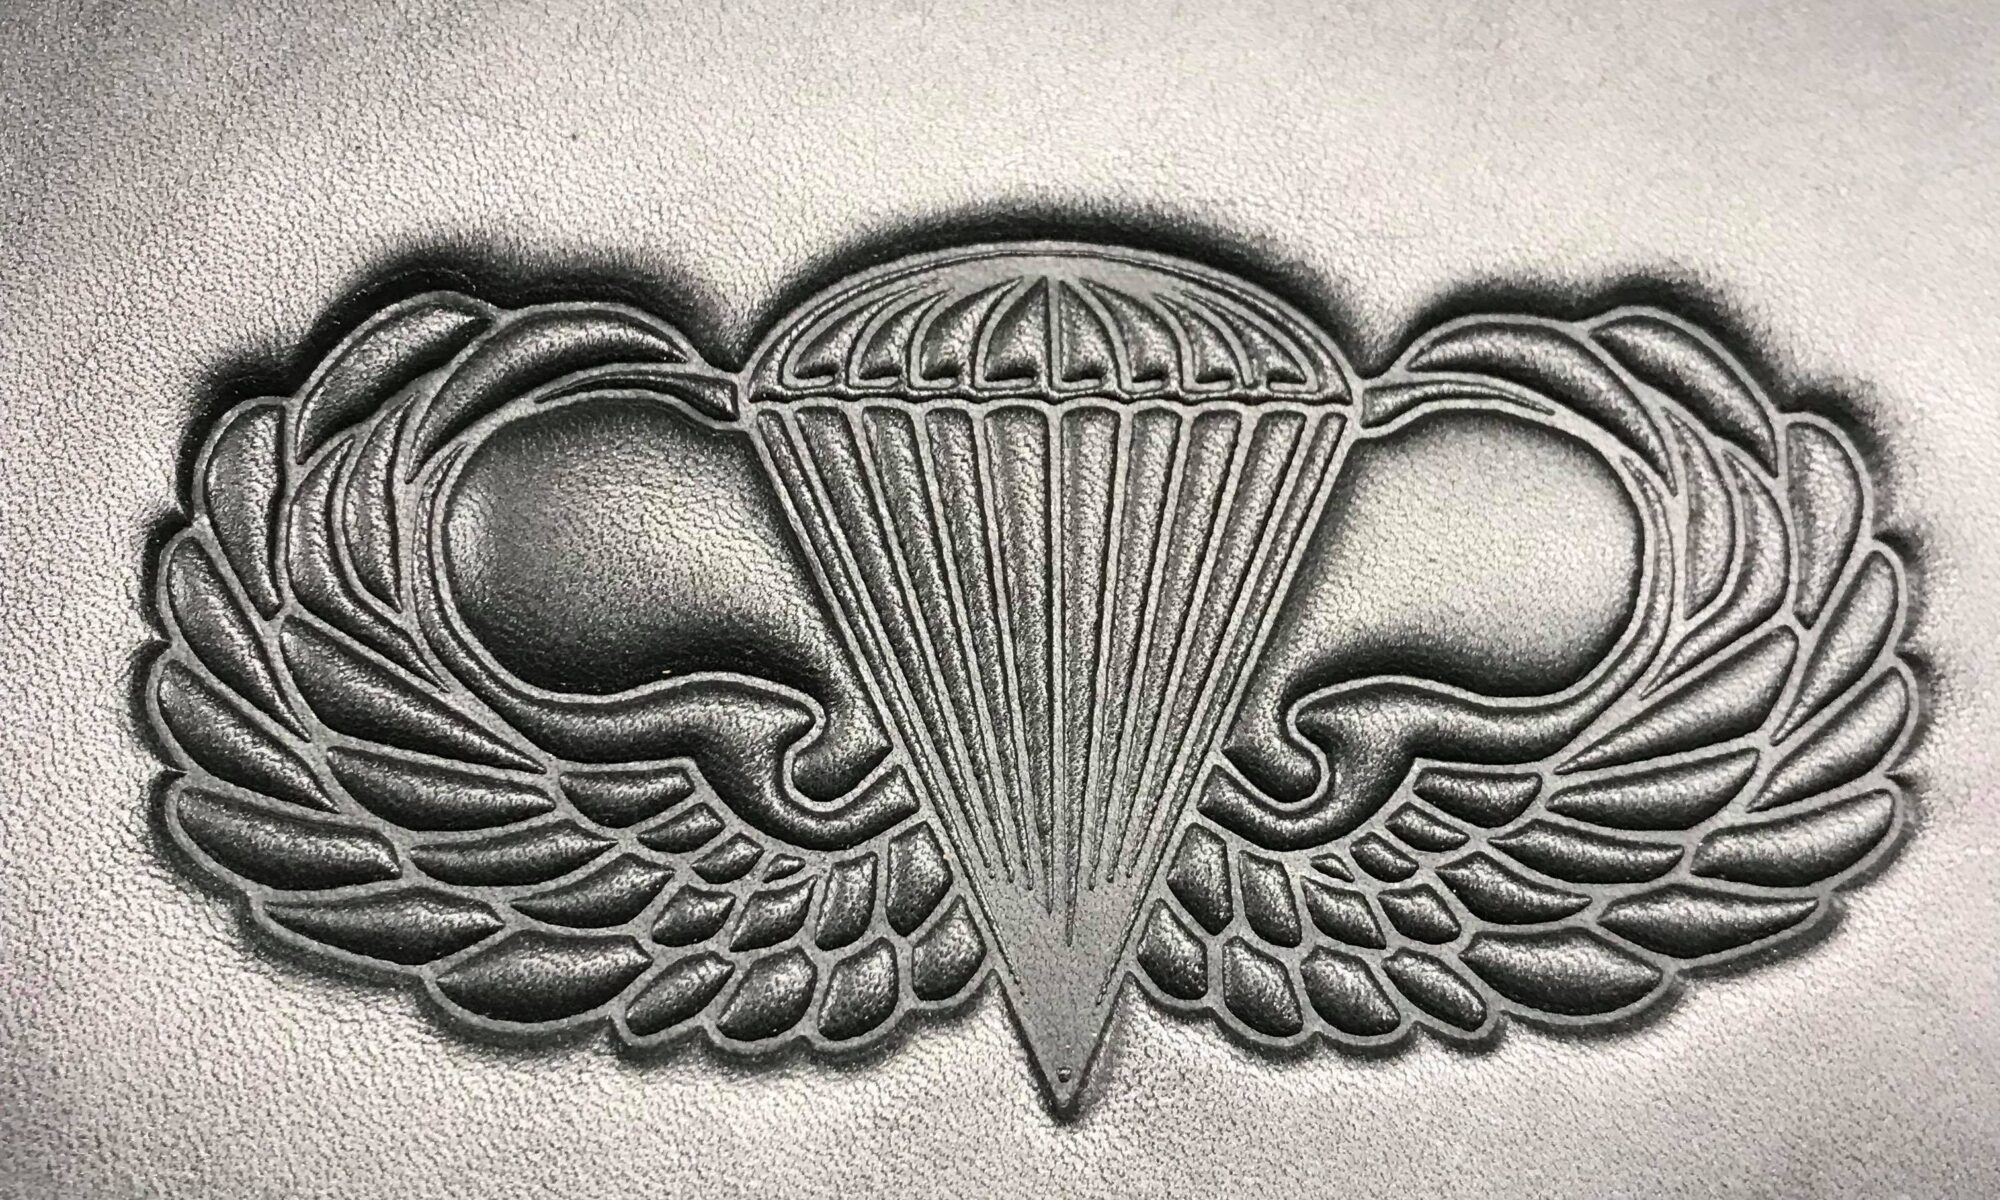 US Airborne Logo on Harley-Davidson or Indian heat shield from Captain Itch